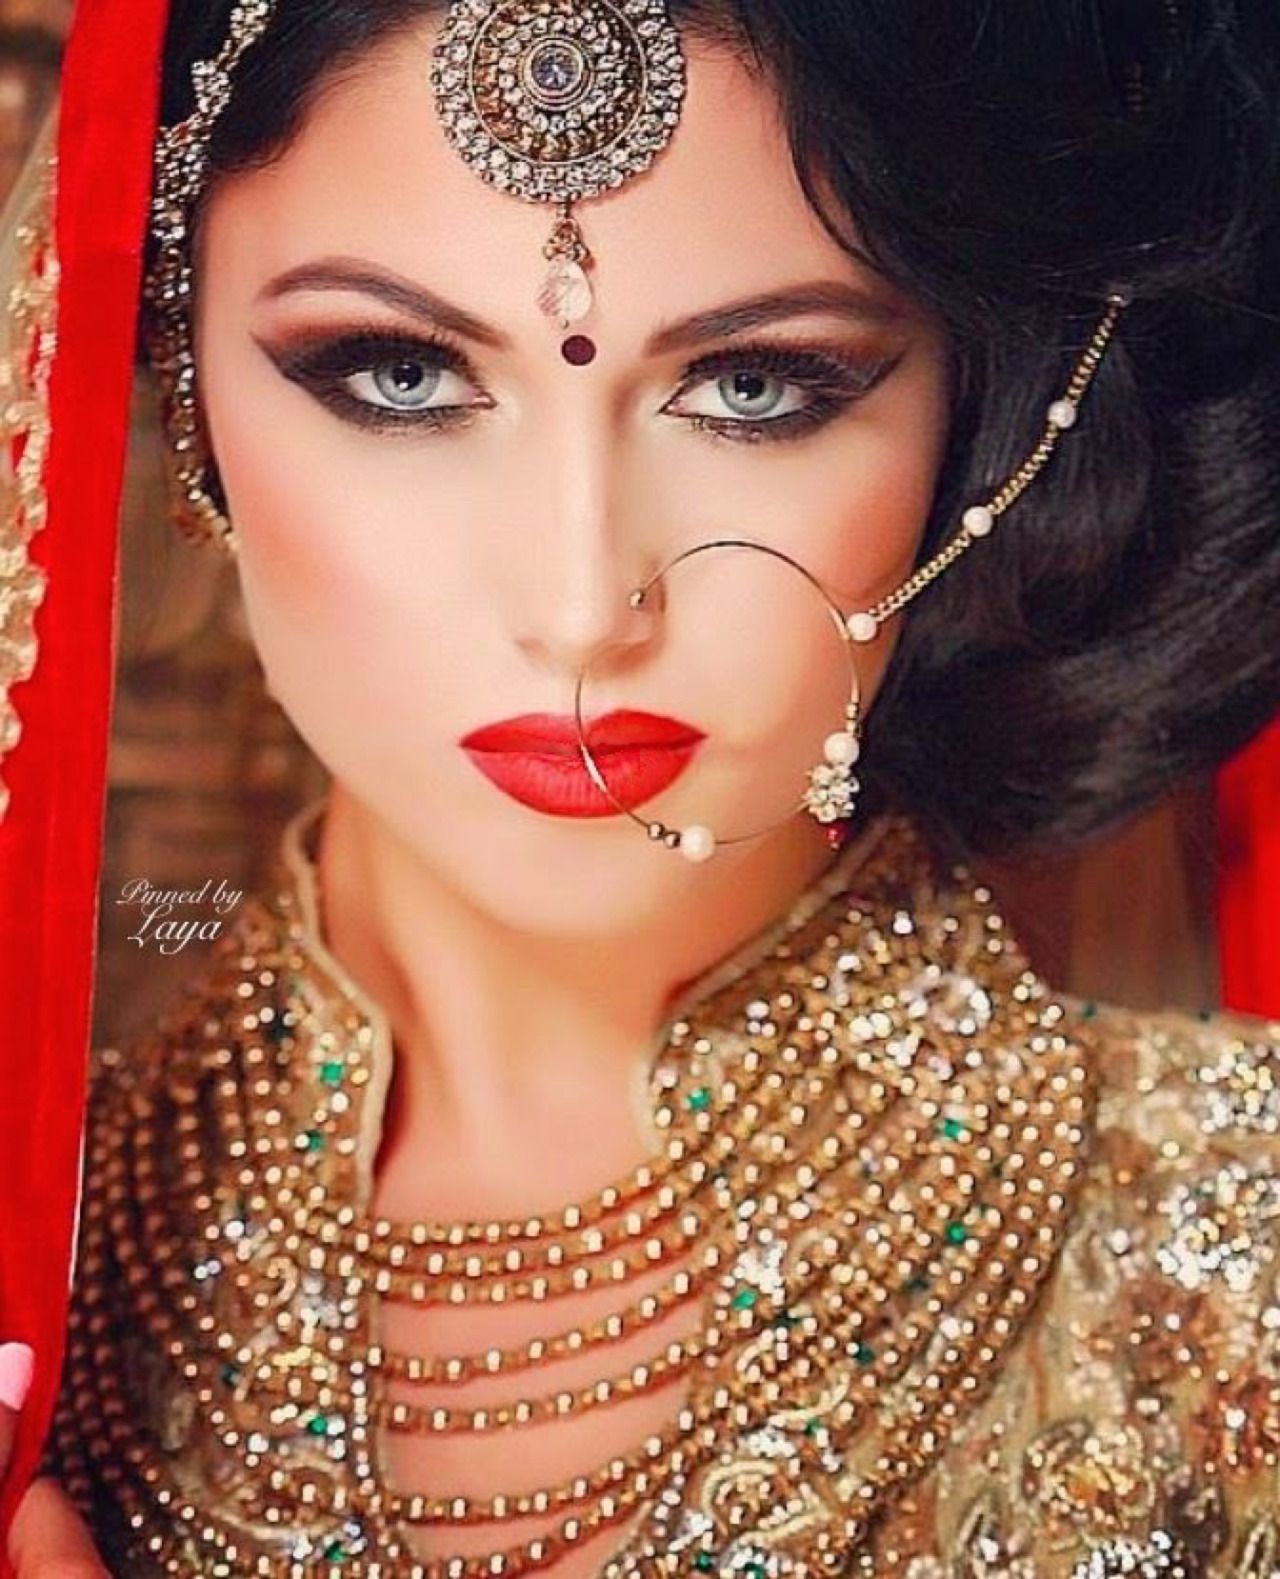 Pin by Sharmin Tahir on Jewelry! | Pinterest | Punjabi bride ...